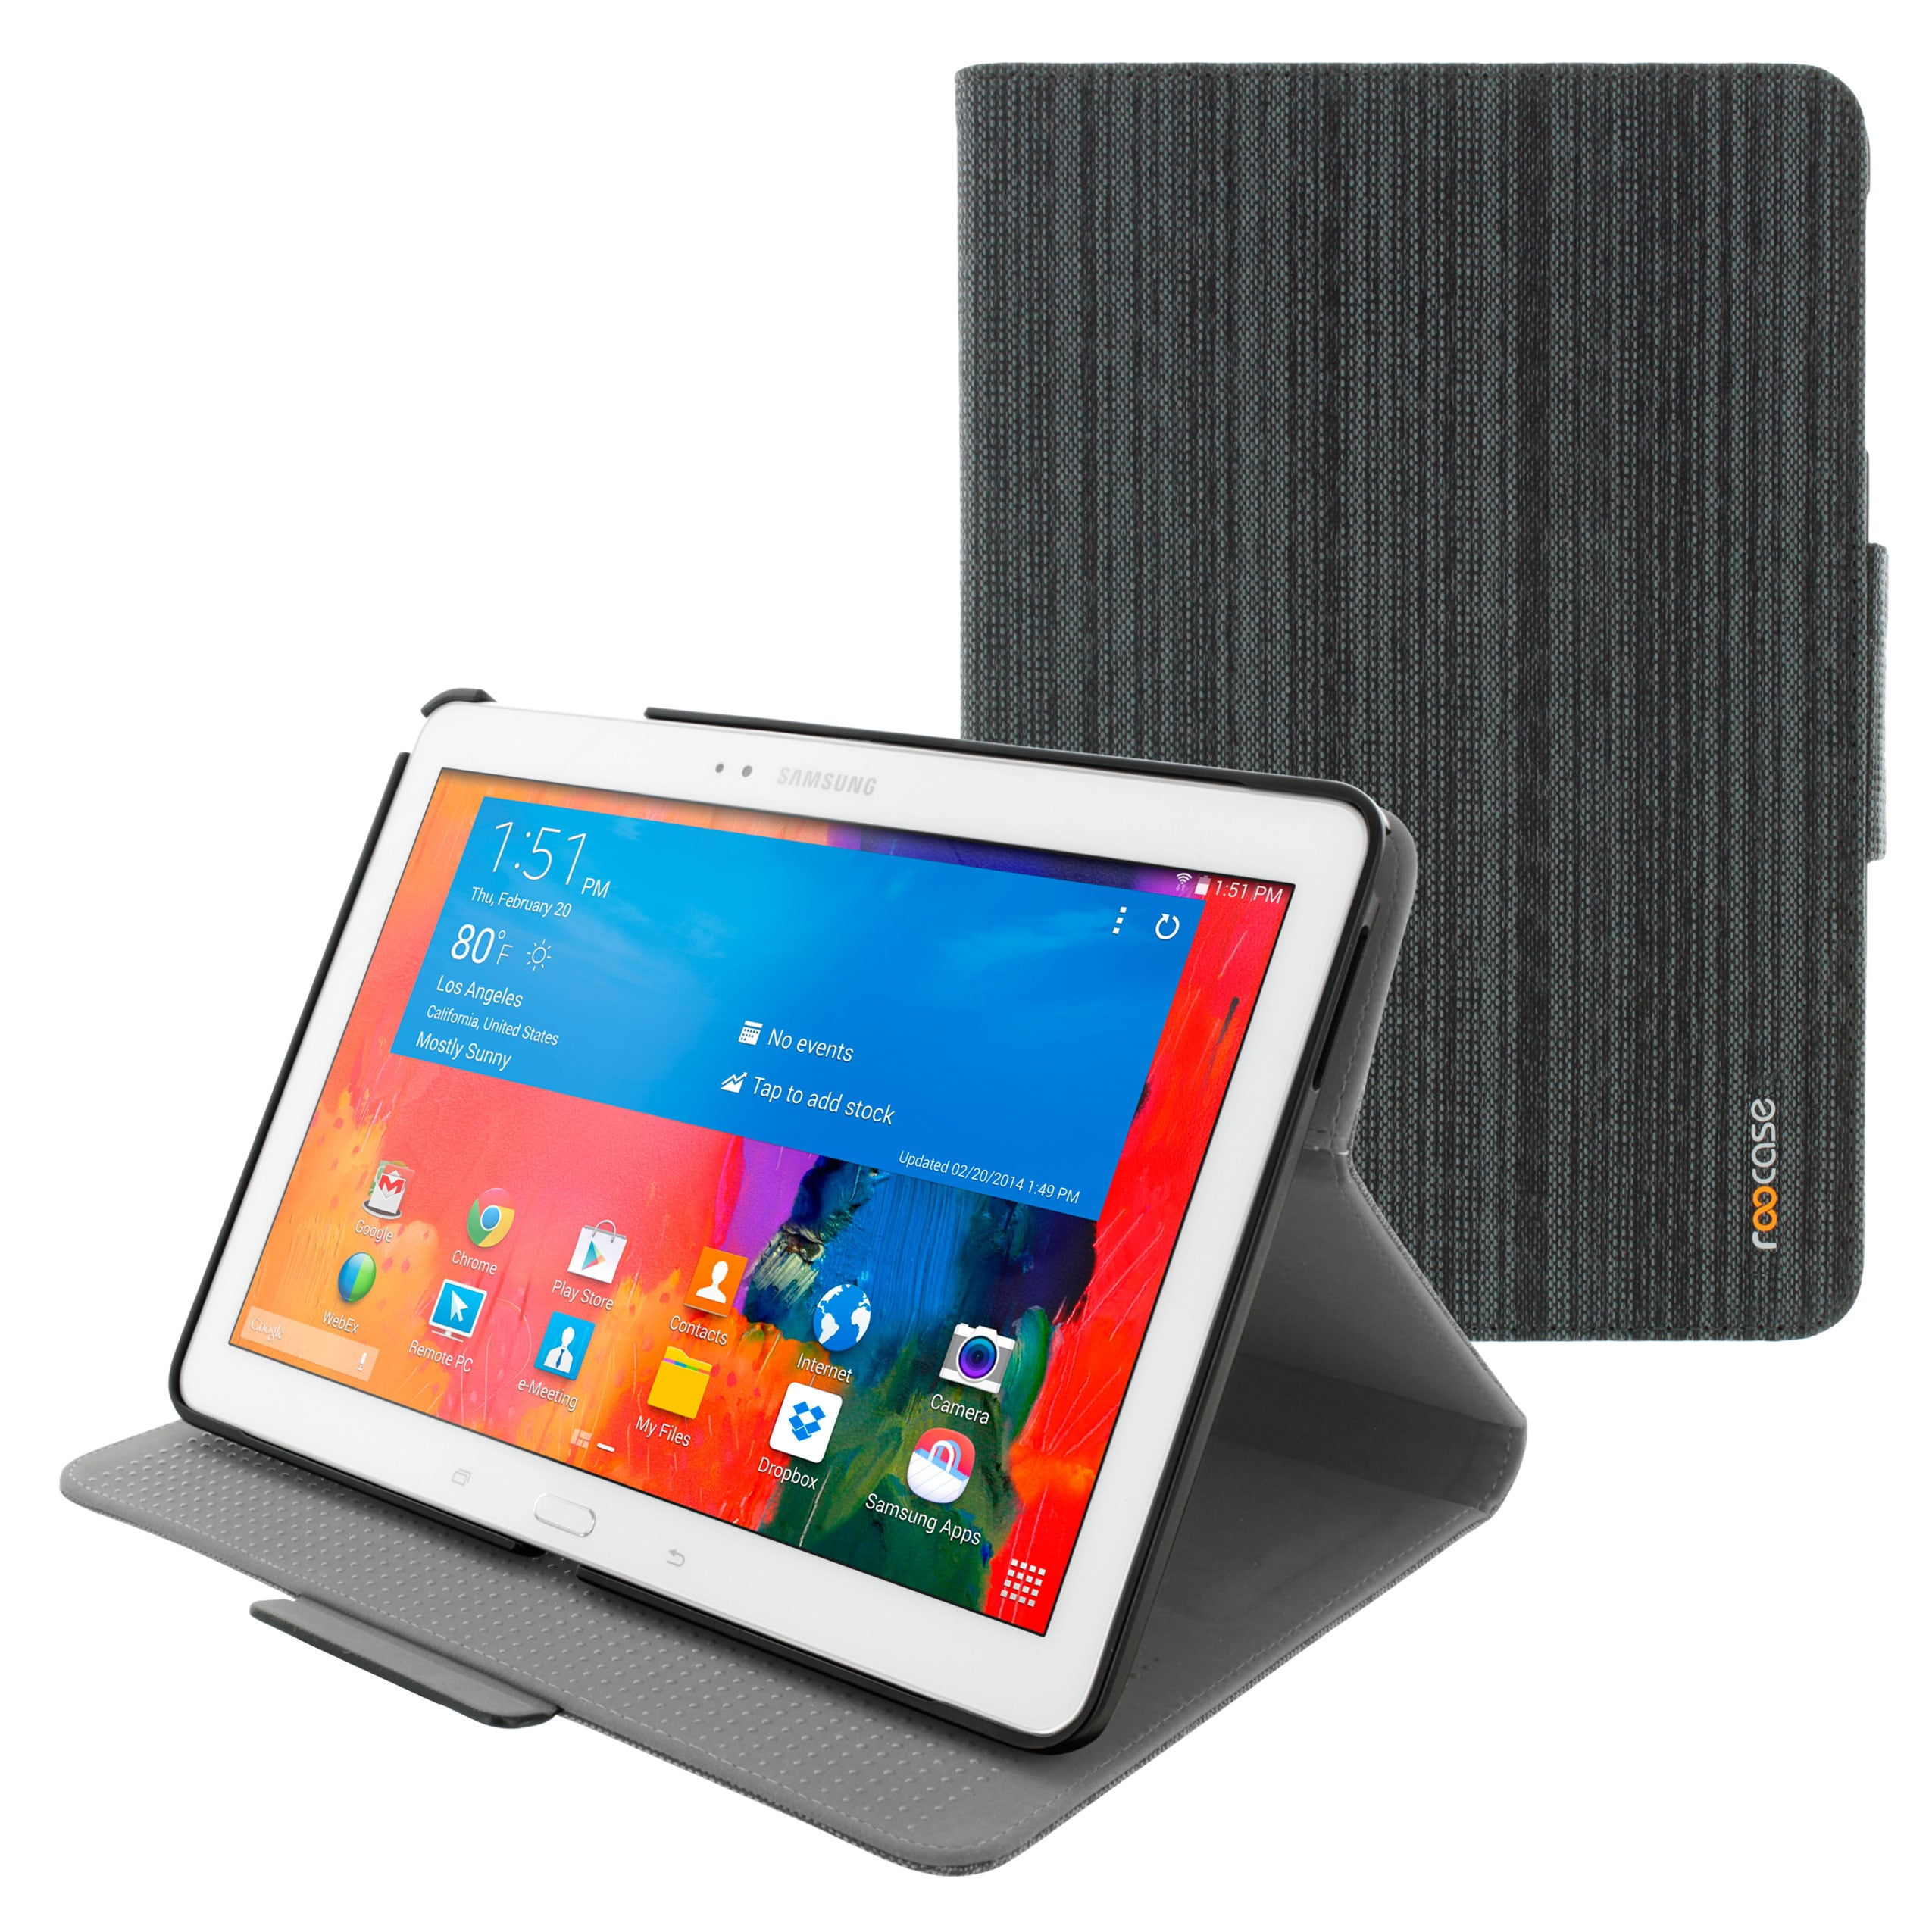 roocase Orb Folio Case for Samsung Galaxy Tab Pro 10.1